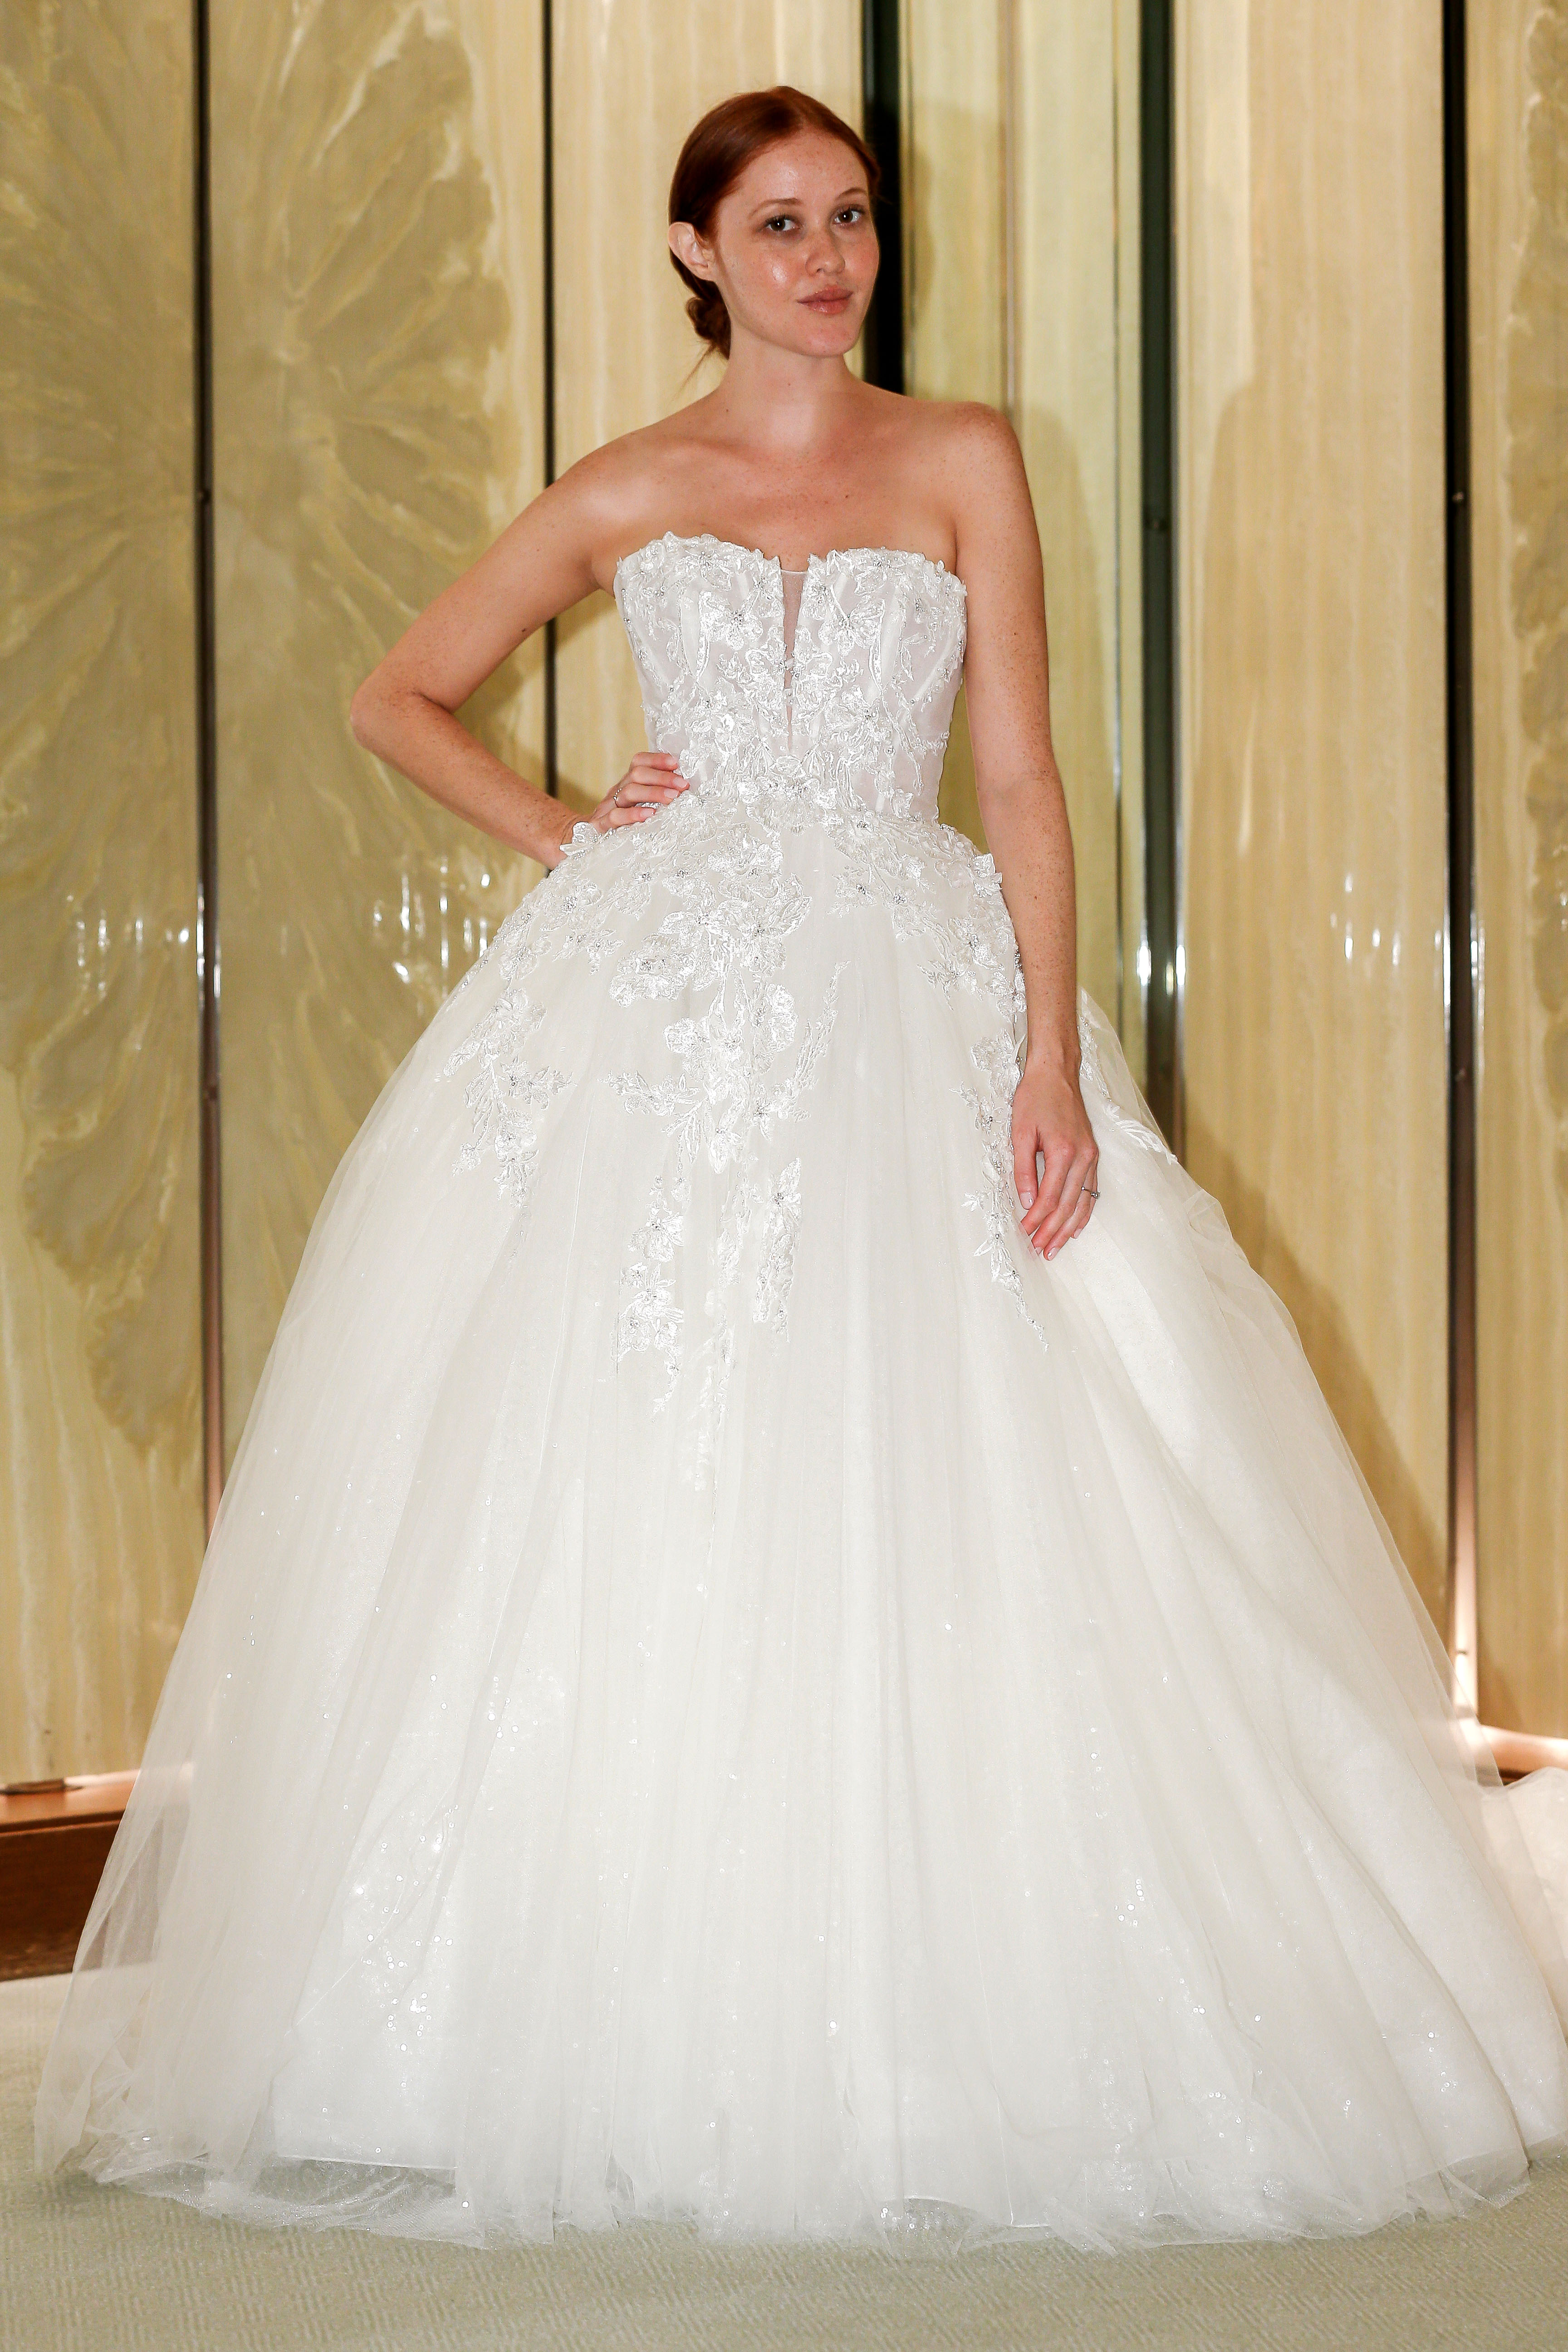 randy fenoli wedding dress tulle strapless floral applique ball gown